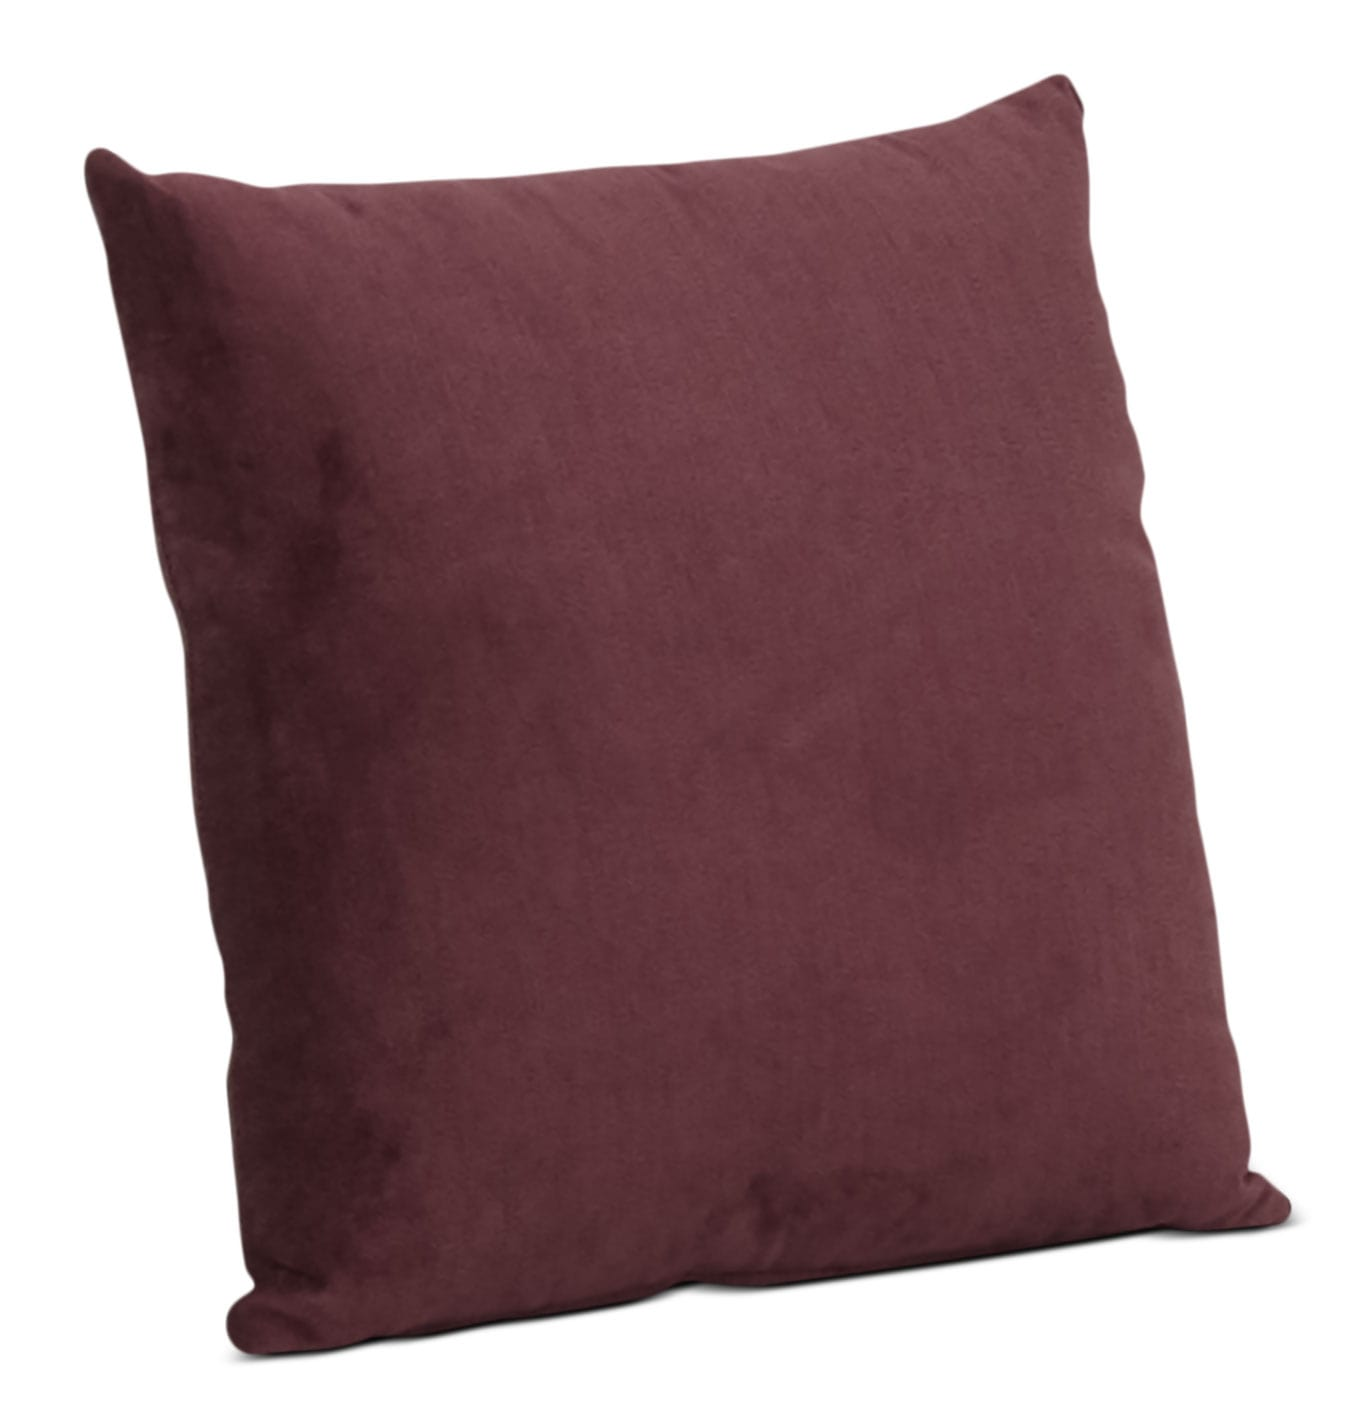 Designed2B Chenille Accent Throw Pillow – Lavish Aubergine